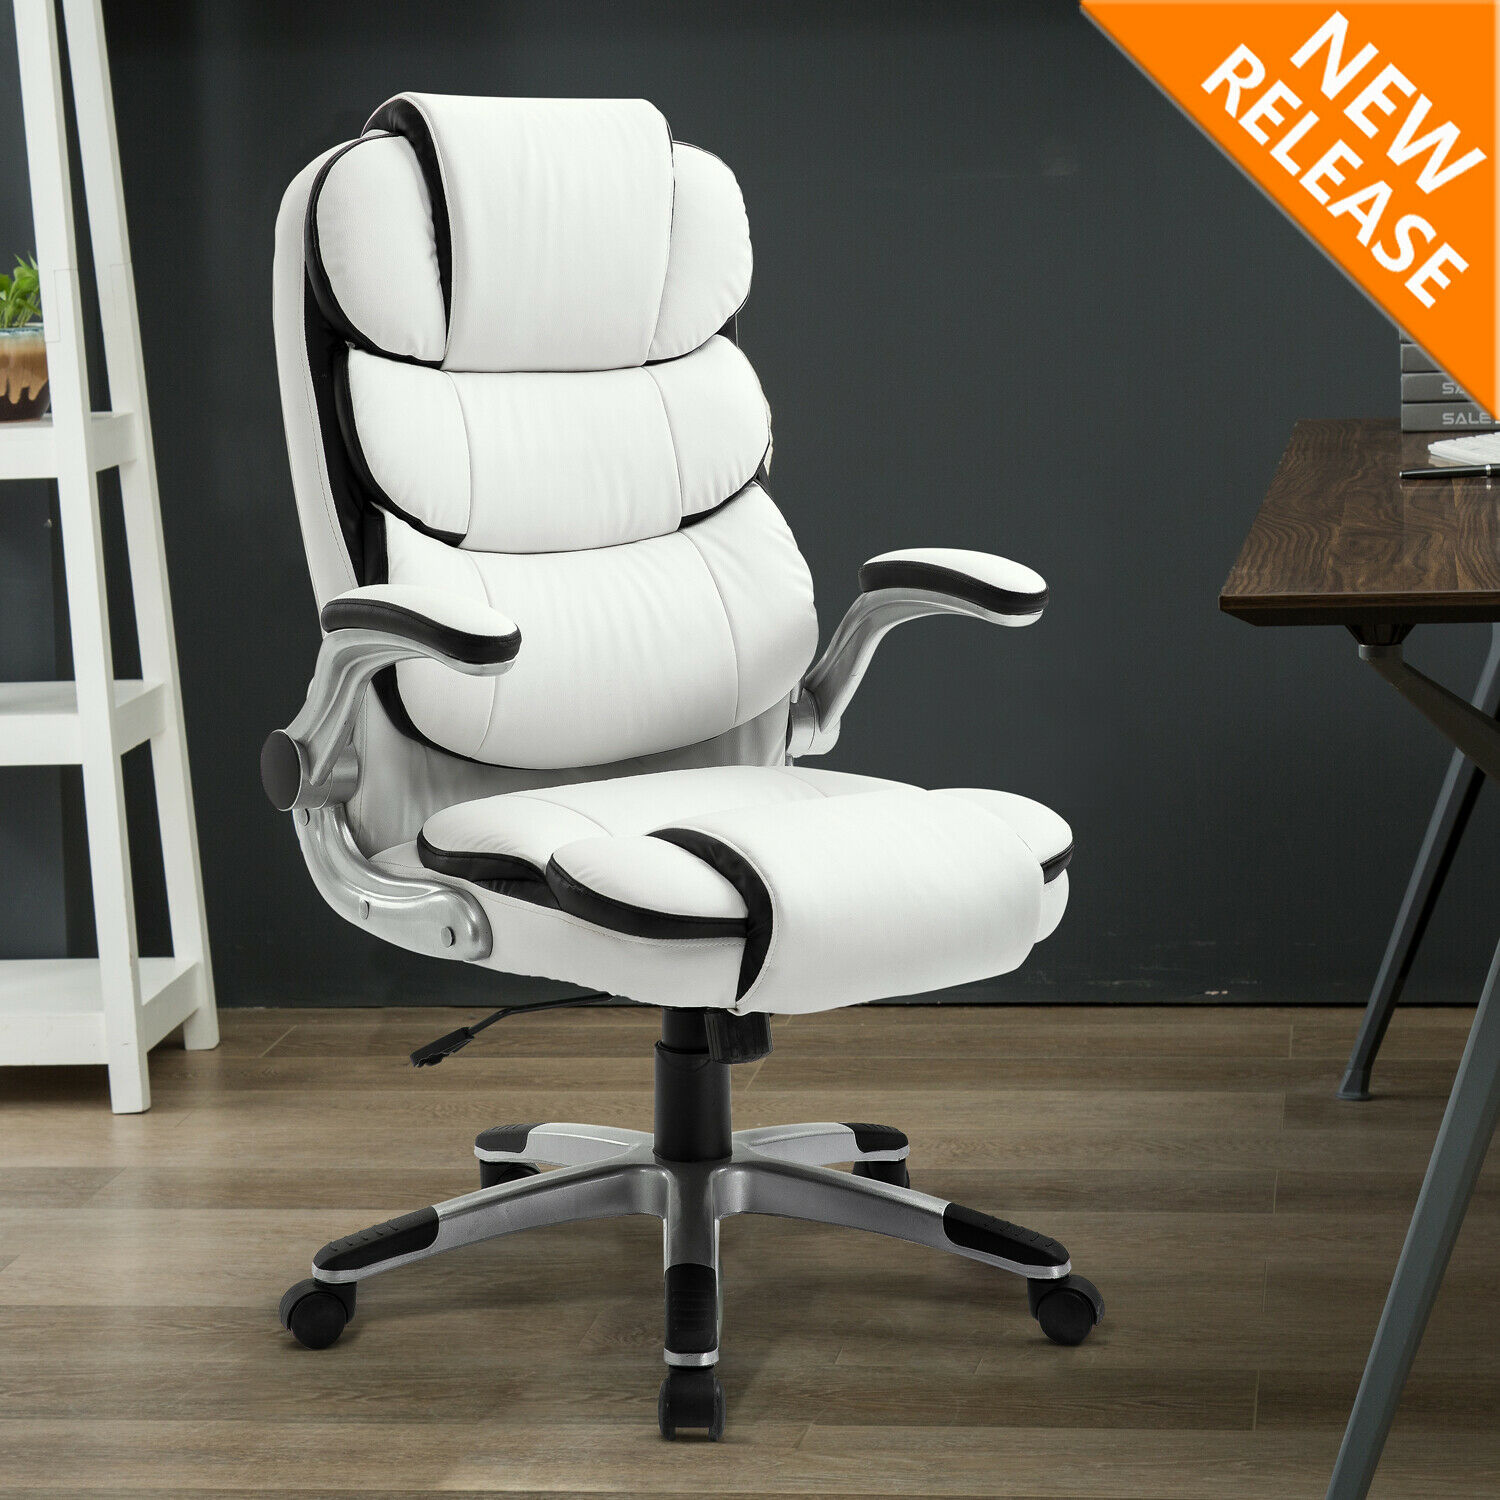 Yamasoro: one of the best ergonomic office chairs of the 2020s.